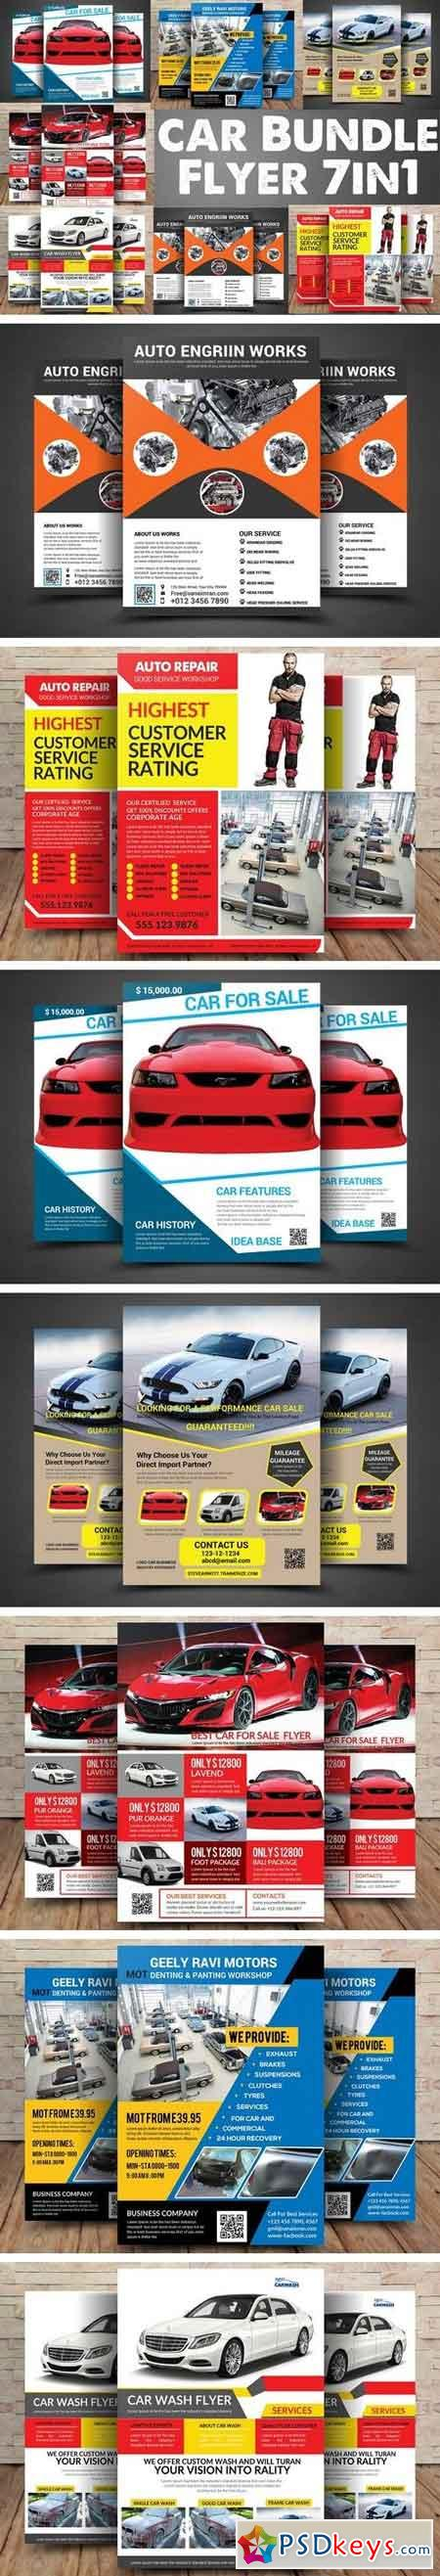 Car Bundle 7in1 Flyer 2094357